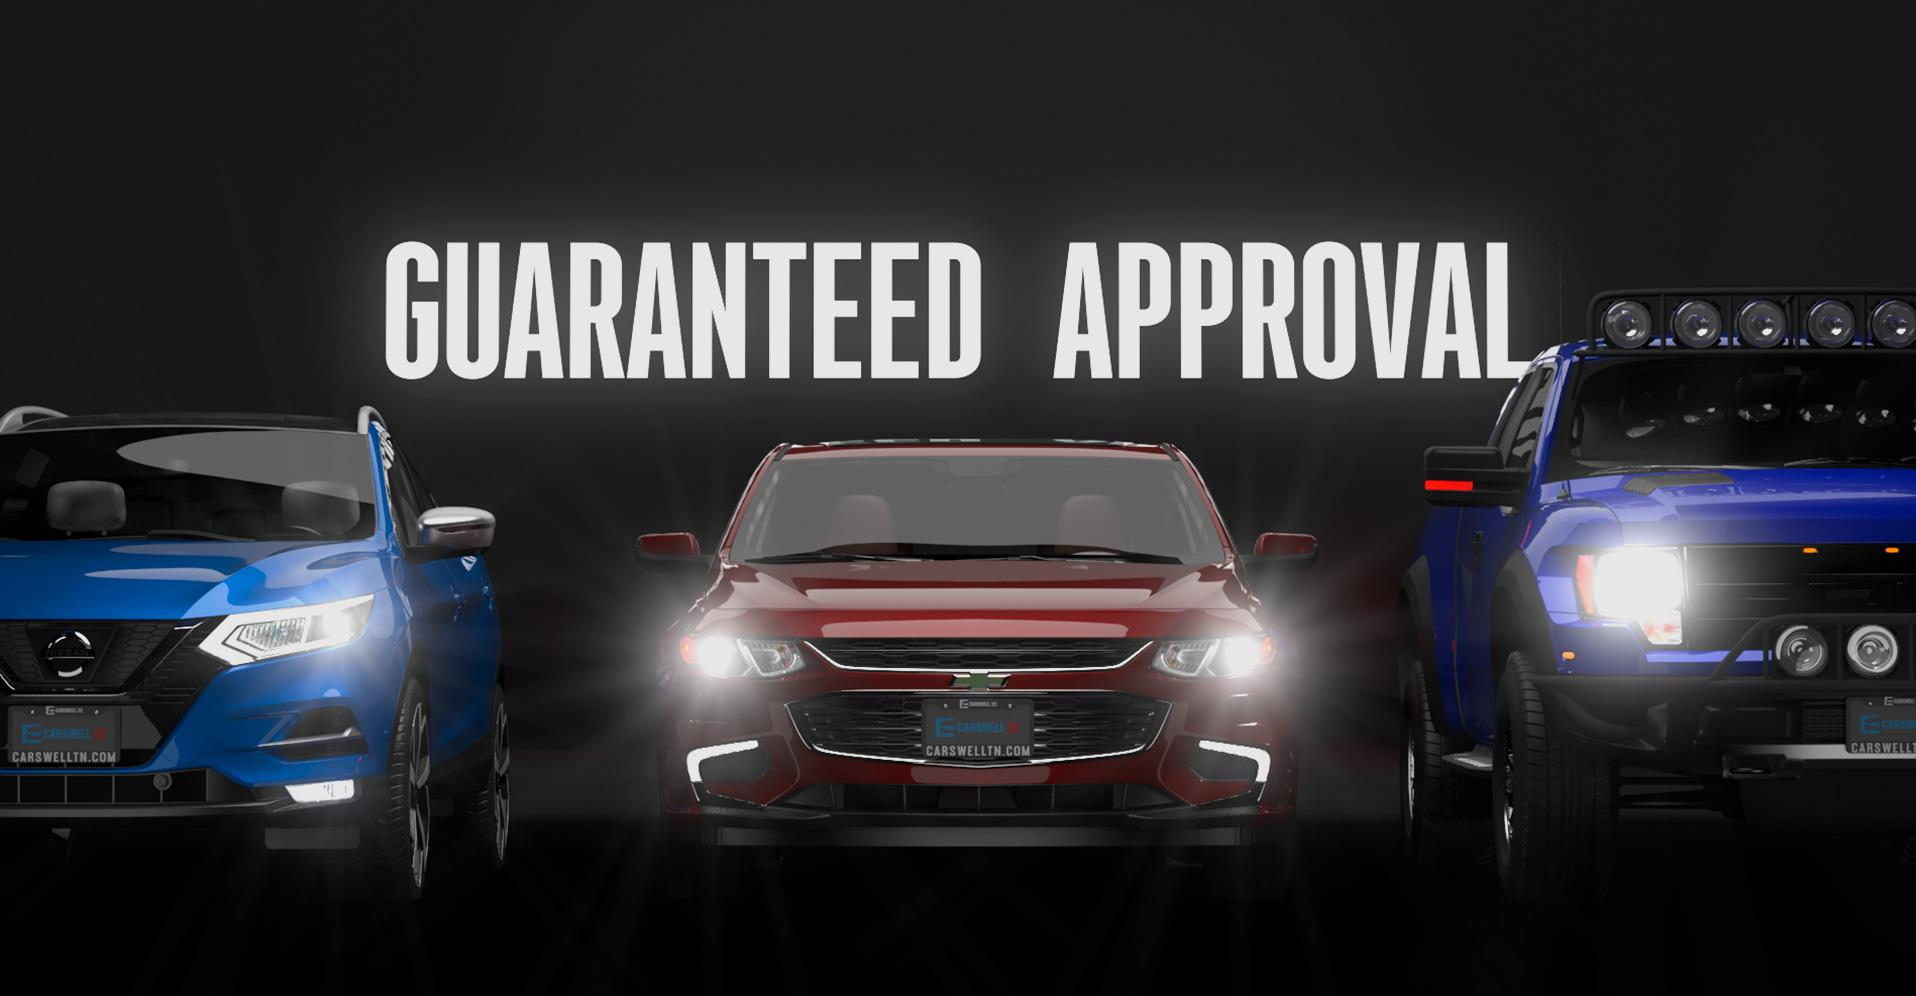 Cars Well LLC - Newport Sevierville TN | New & Used Cars